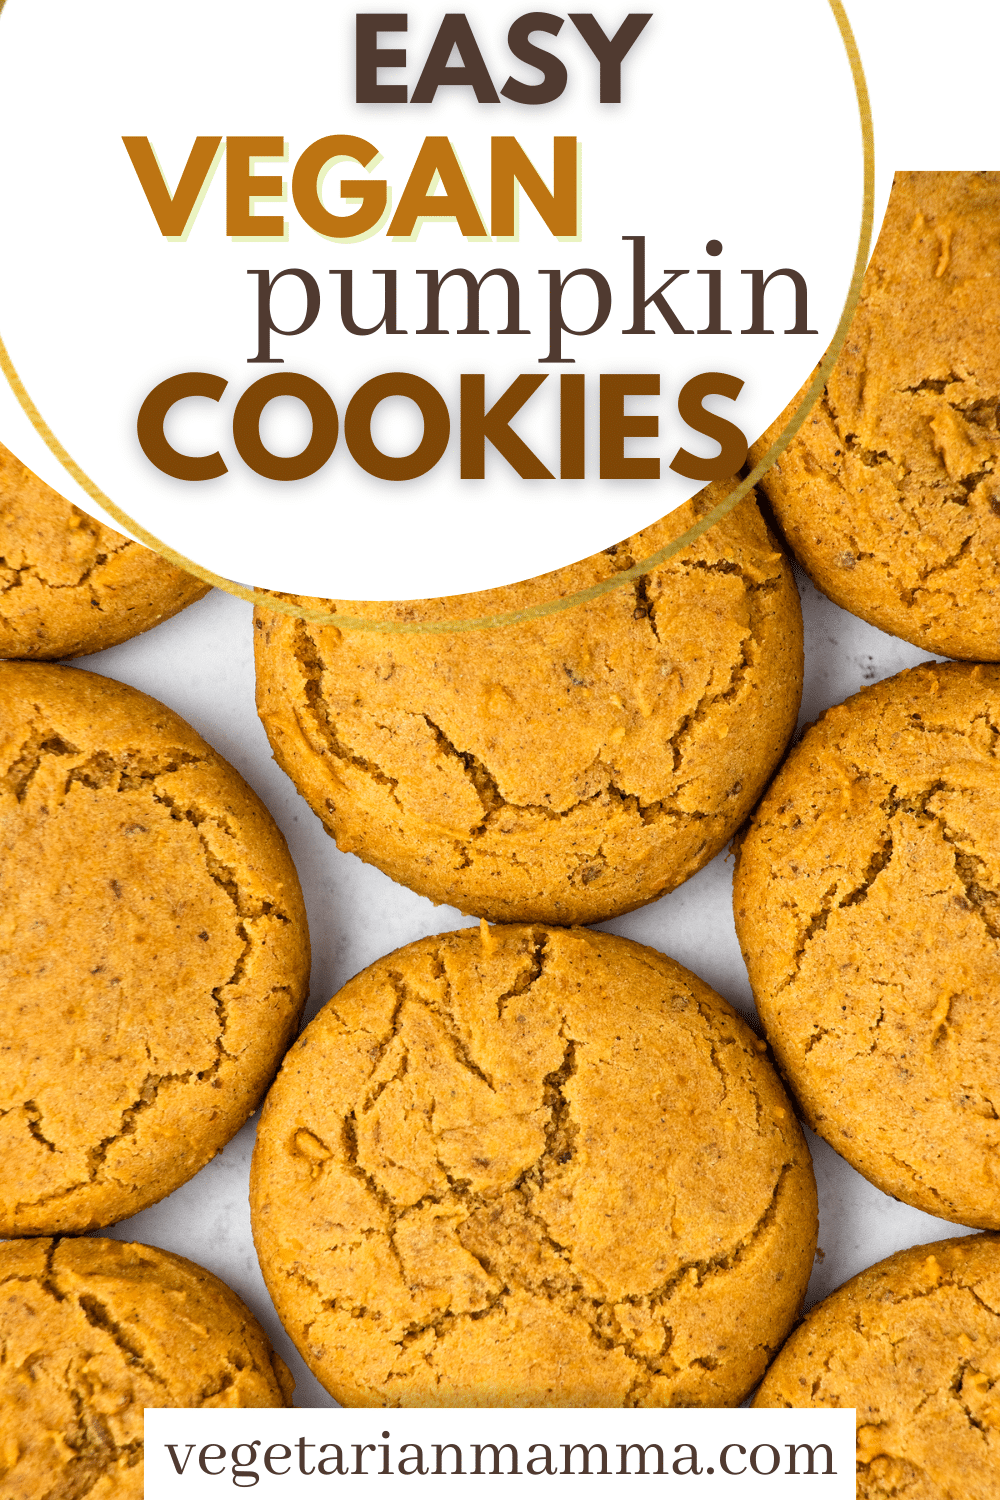 These Vegan Pumpkin Cookies are the perfect easy fall dessert! Creamy pumpkin puree and a delicious pumpkin spice blend make these chewy gluten-free cookies the best of the season.